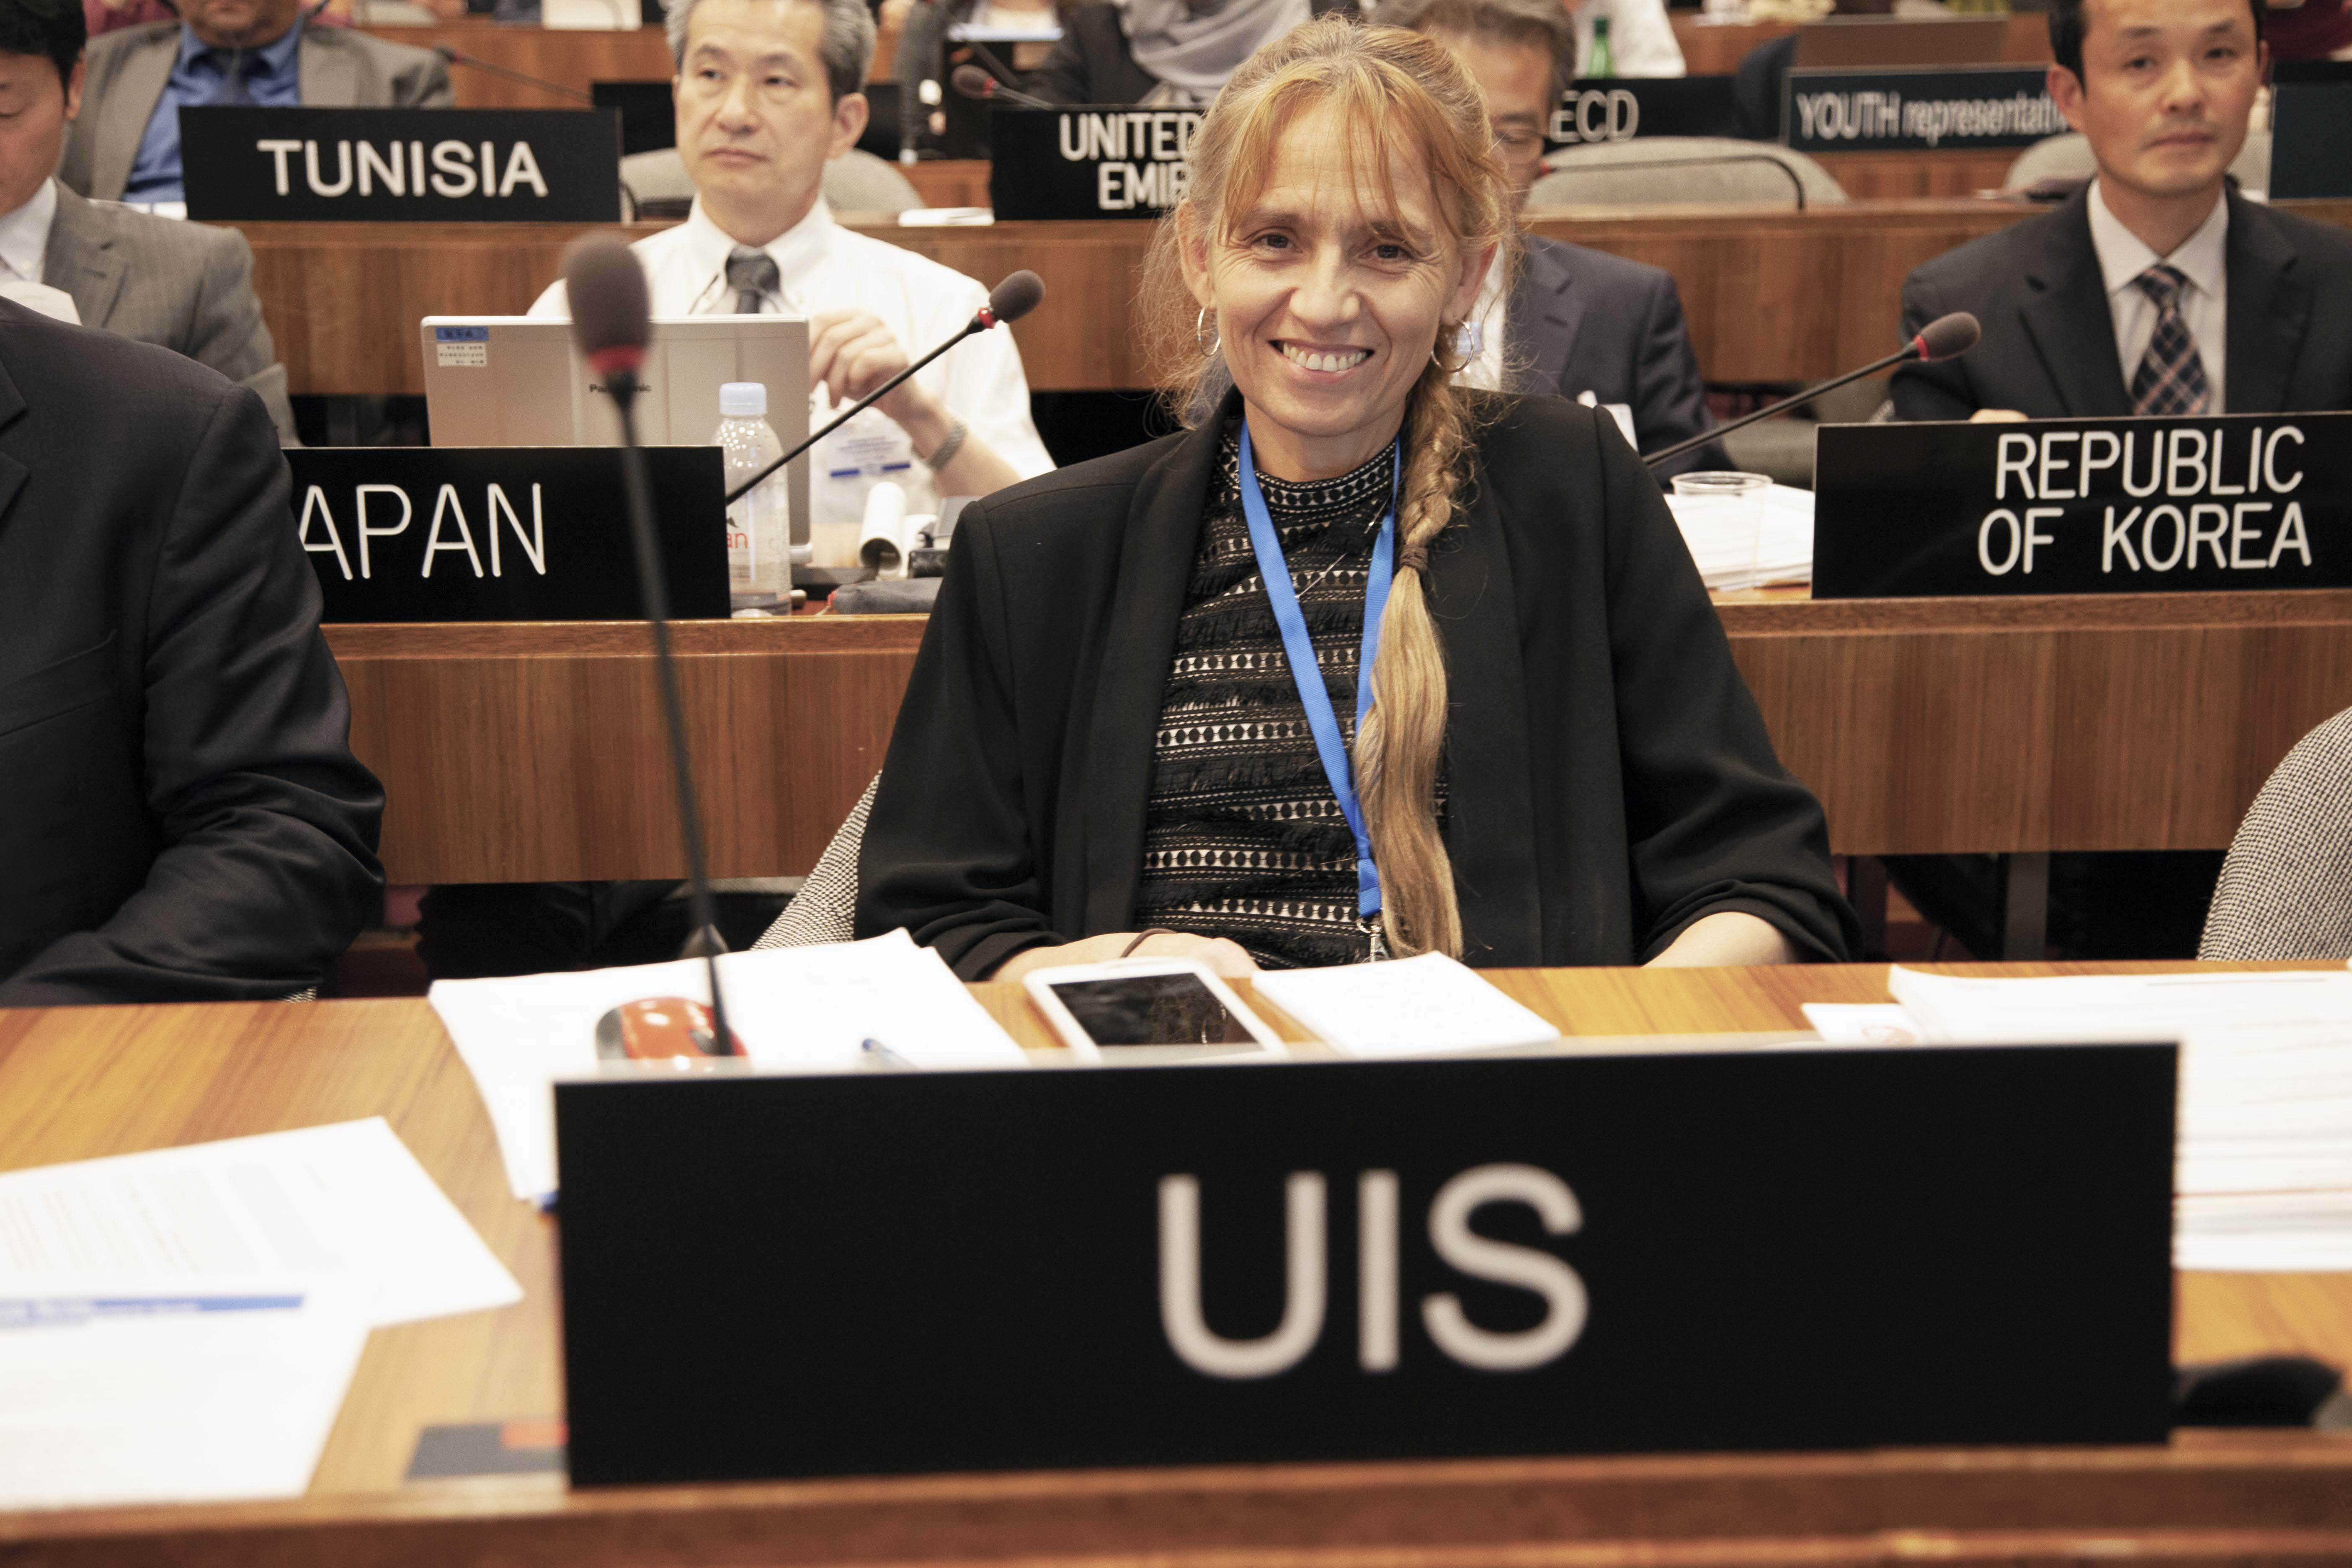 Sylvia Montoya, Director of the UNESCO Institute for Statistics at the SDG-Education 2030 Steering Committee's 5th meeting on 12 September 2018